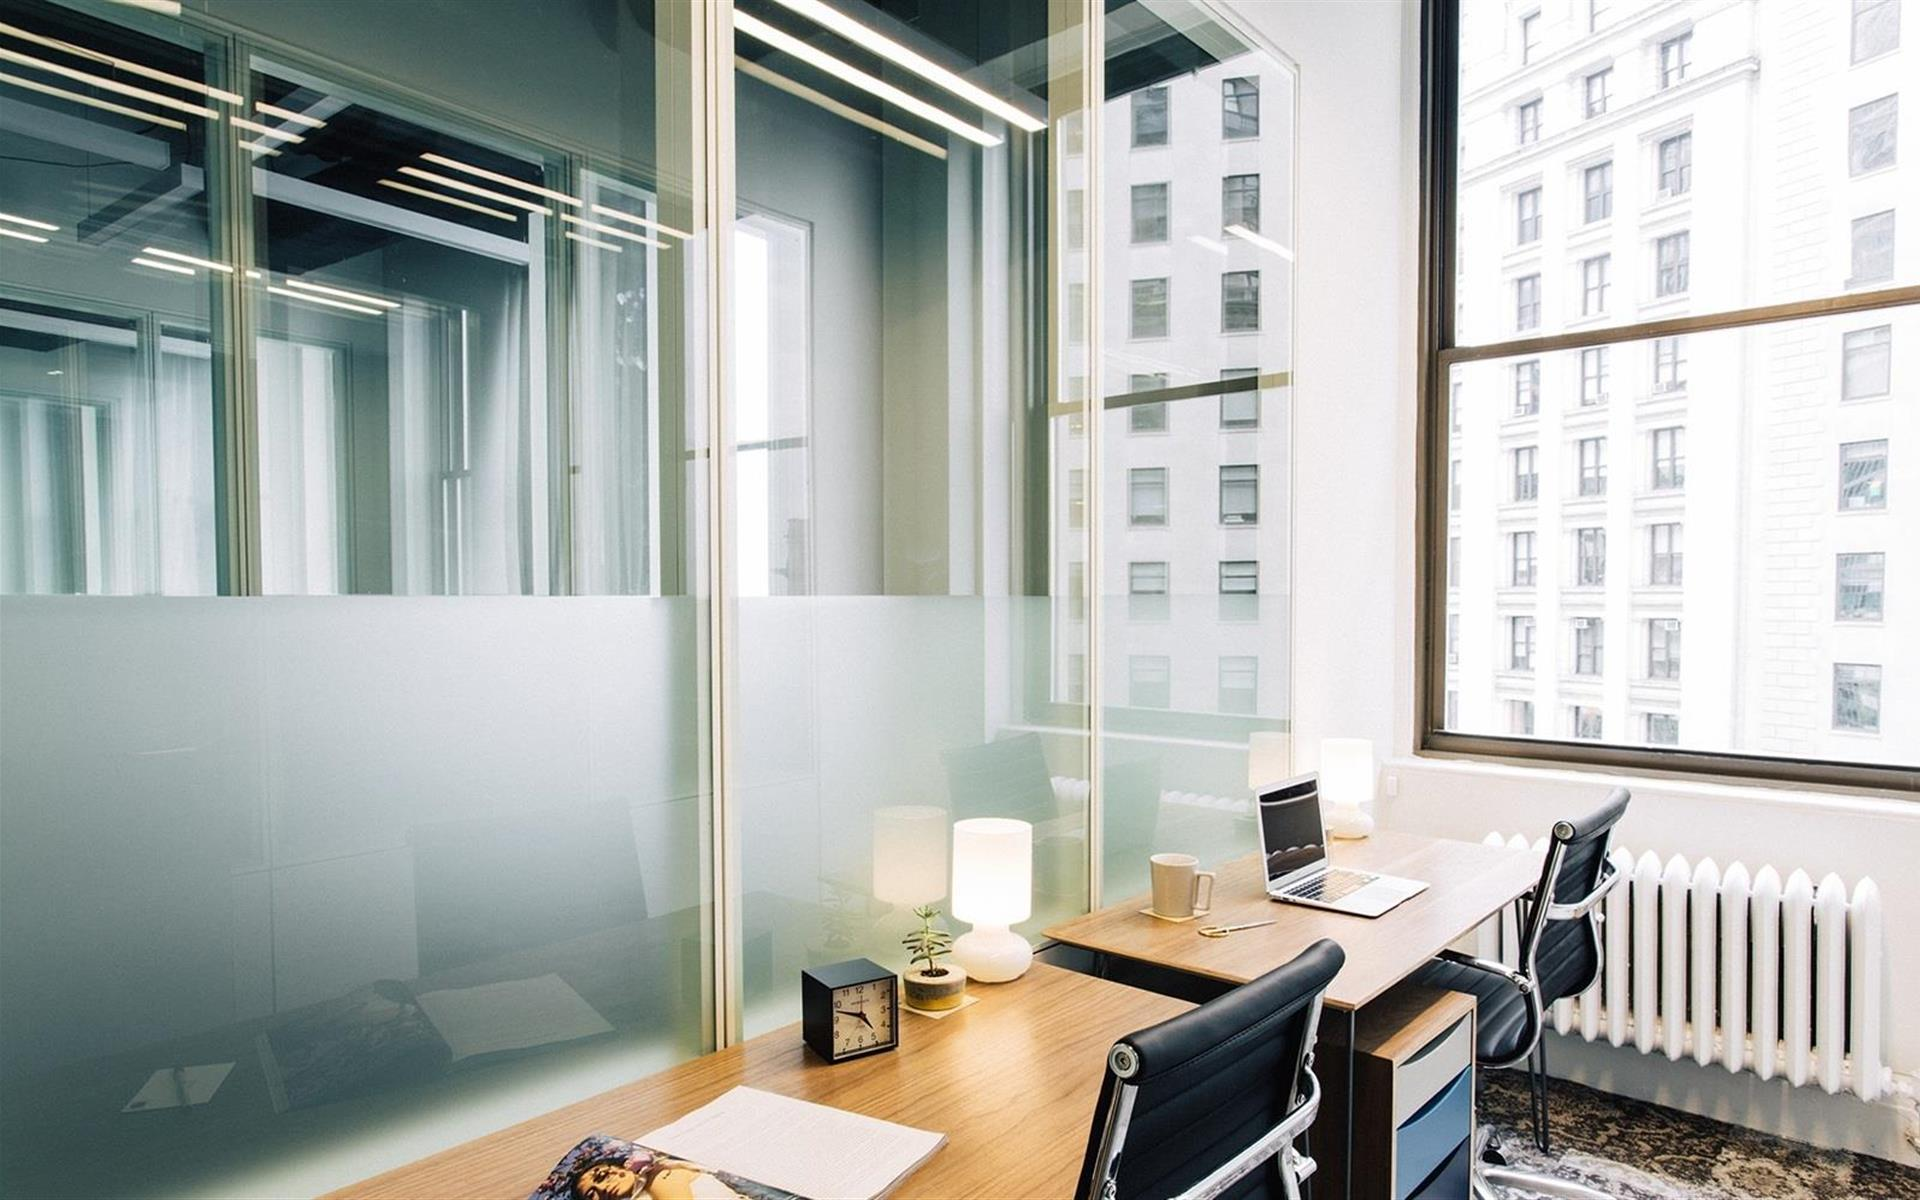 Primary - Financial District - Office | 1 person